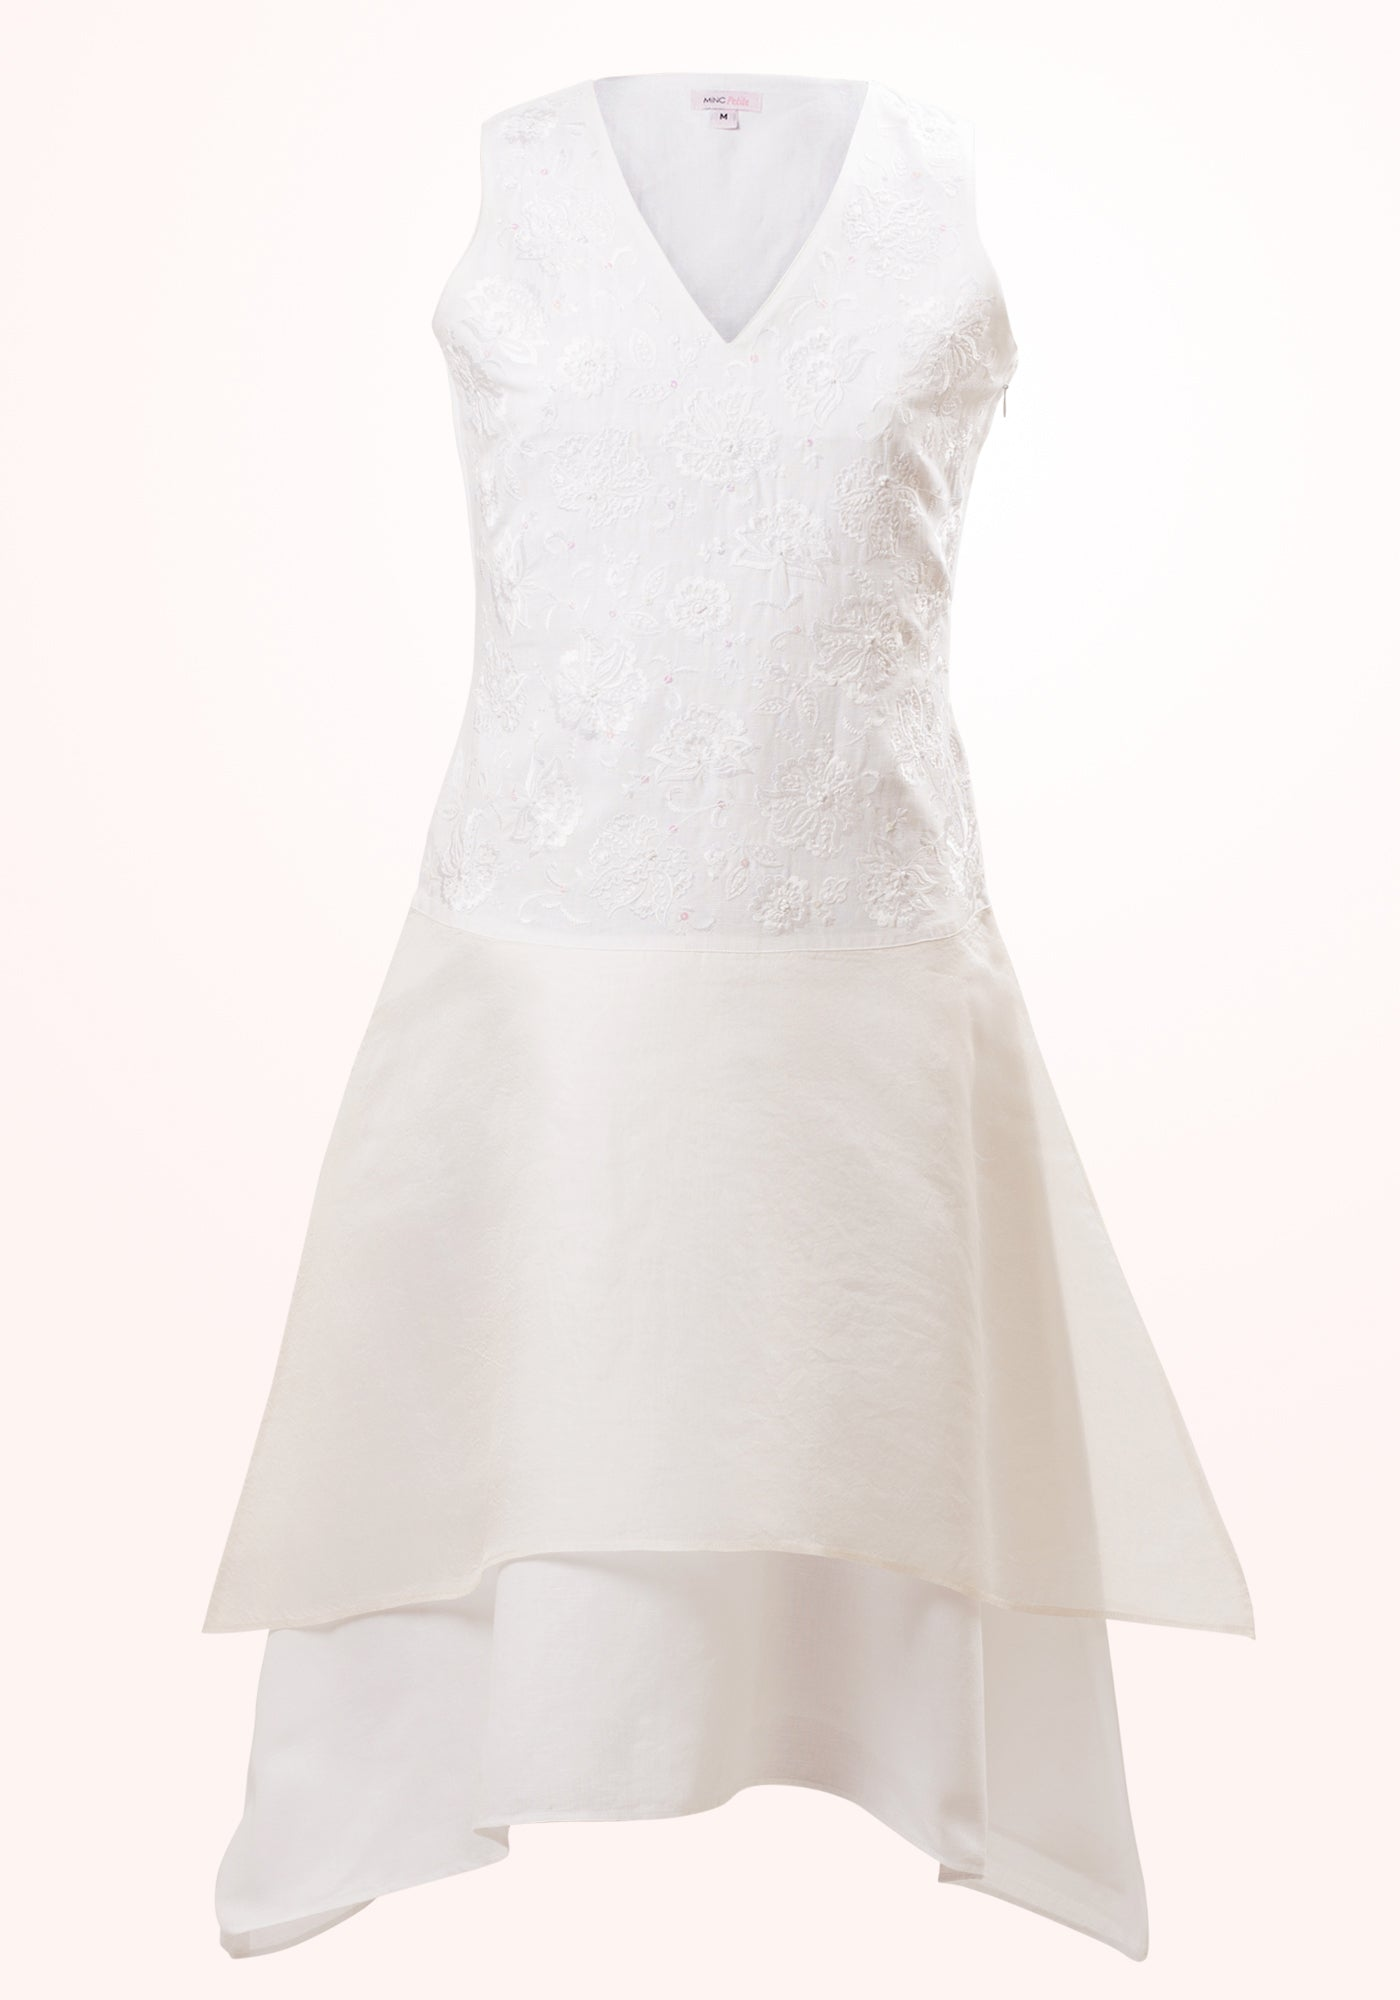 Pearl Linen and Silk Organza Embroidered Girls Dress - MINC ecofashion